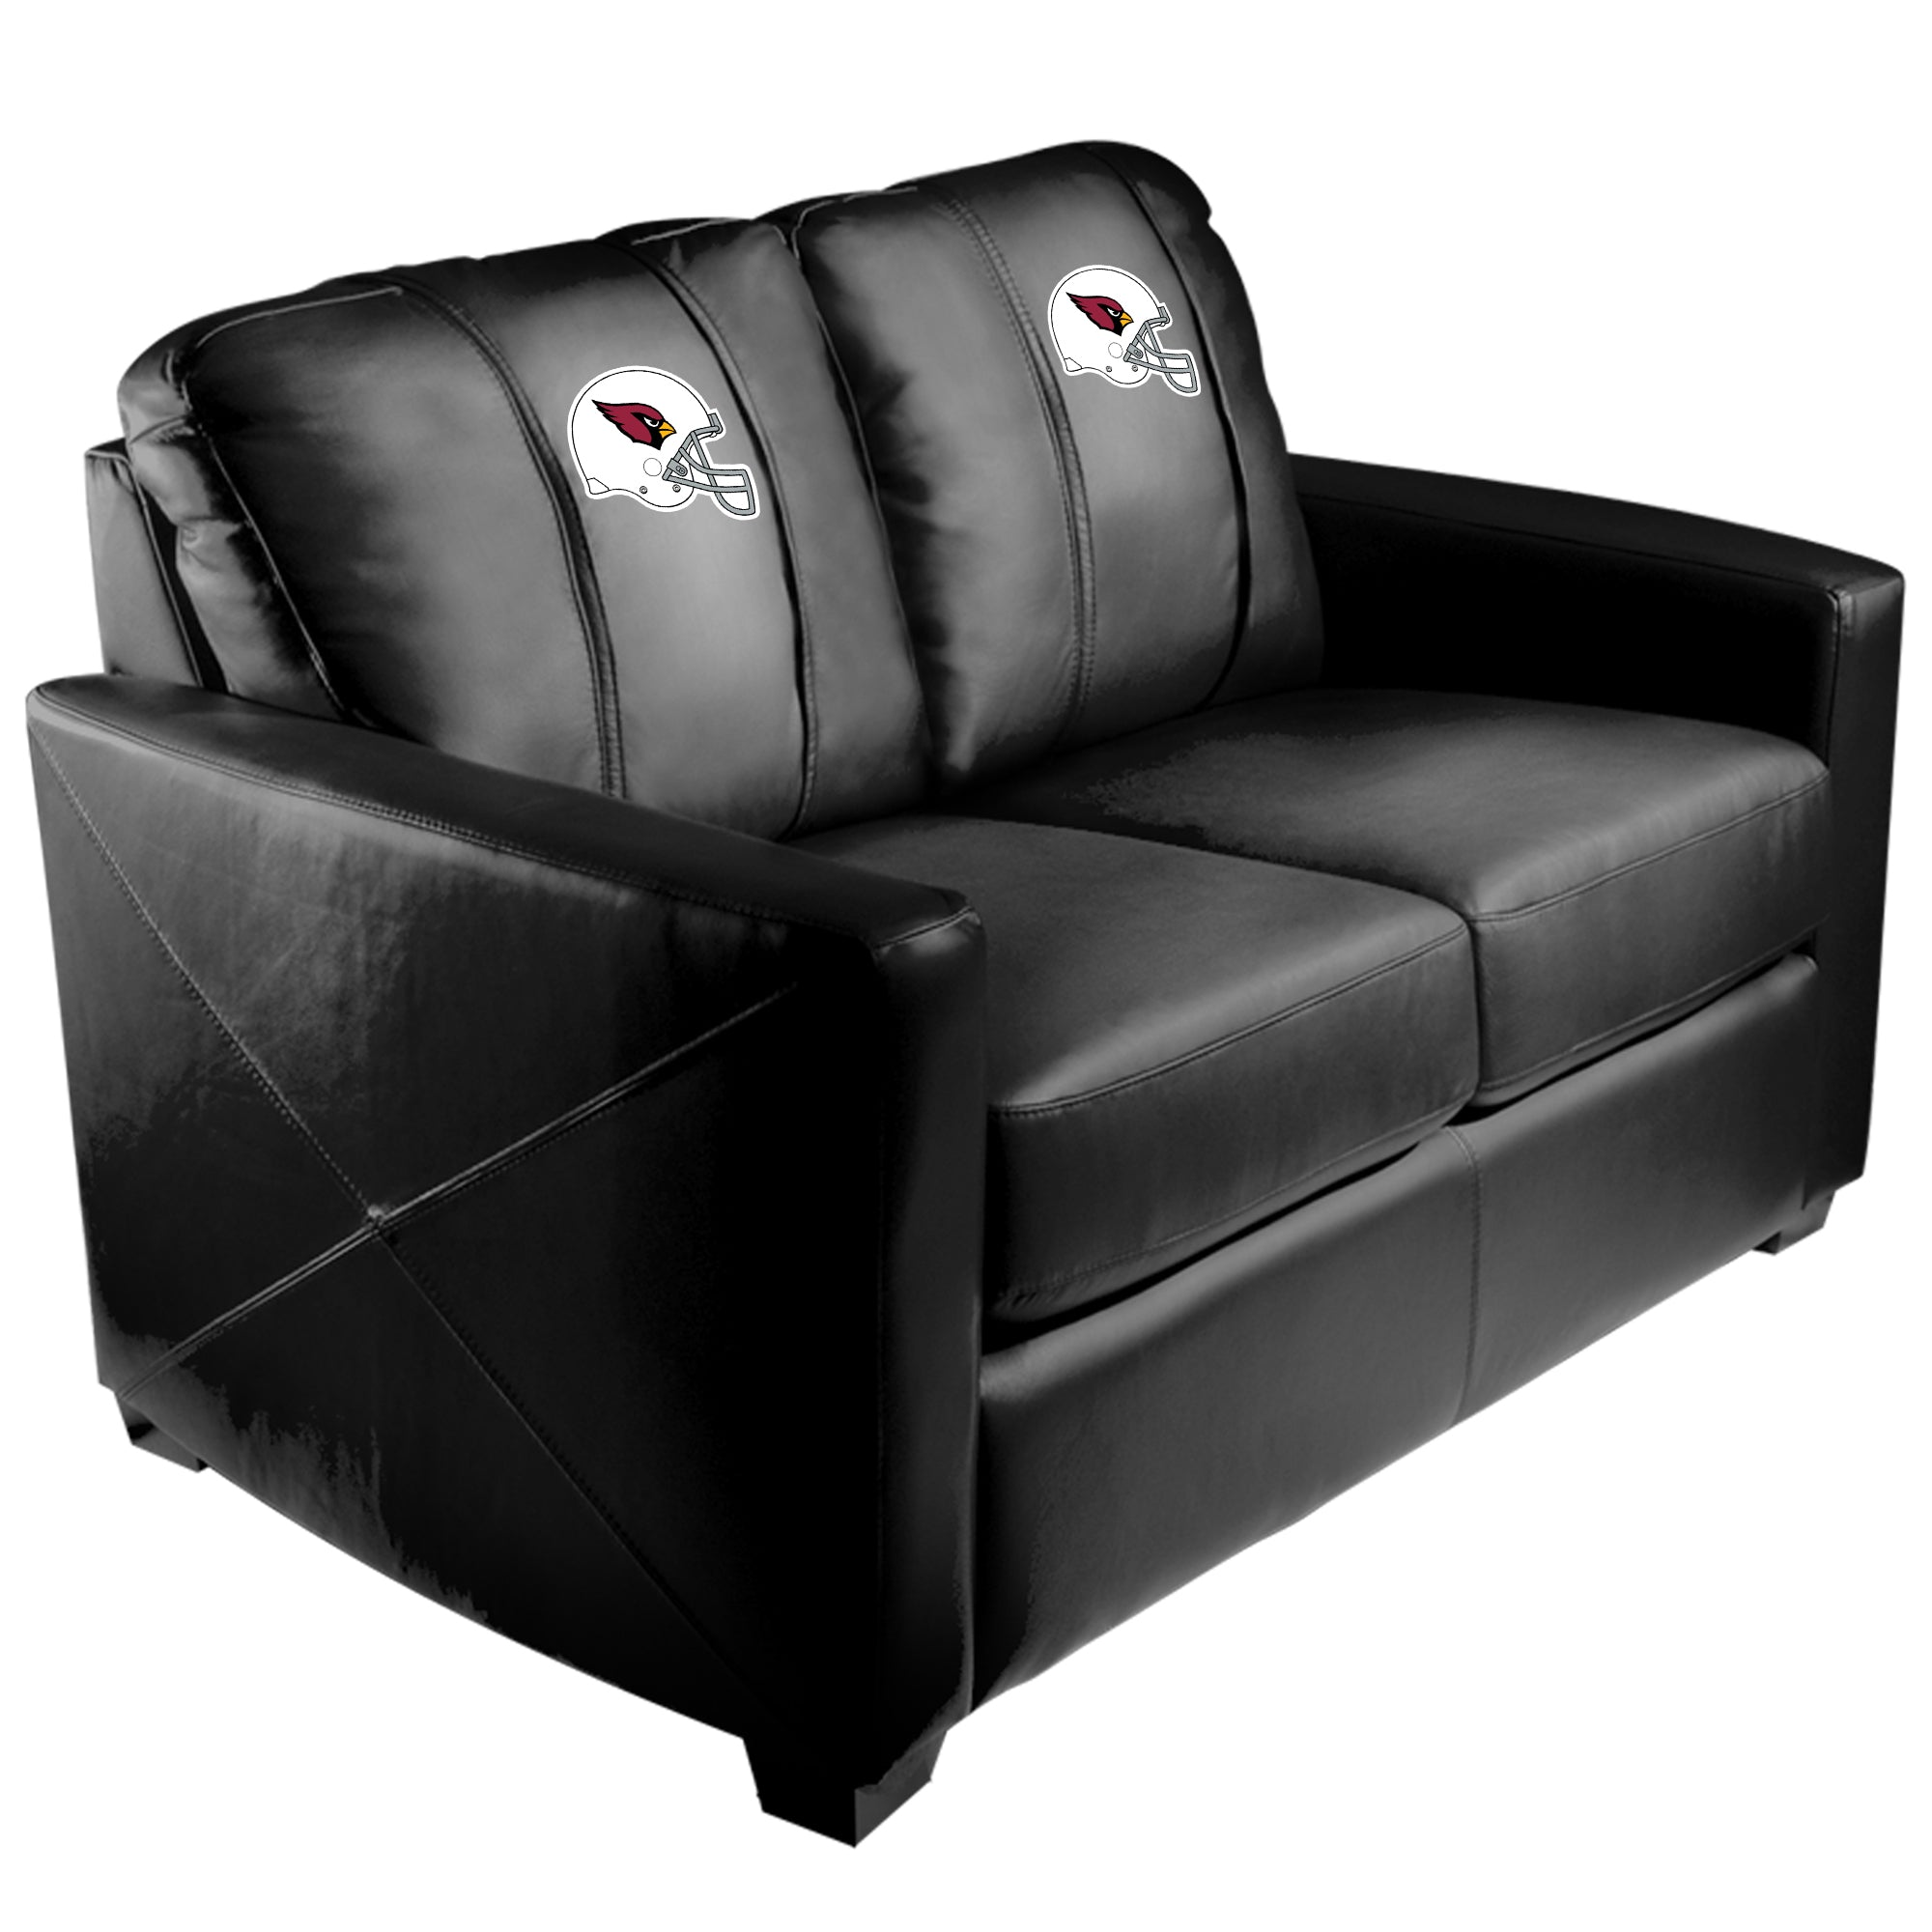 Silver Loveseat with Arizona Cardinals Helmet Logo